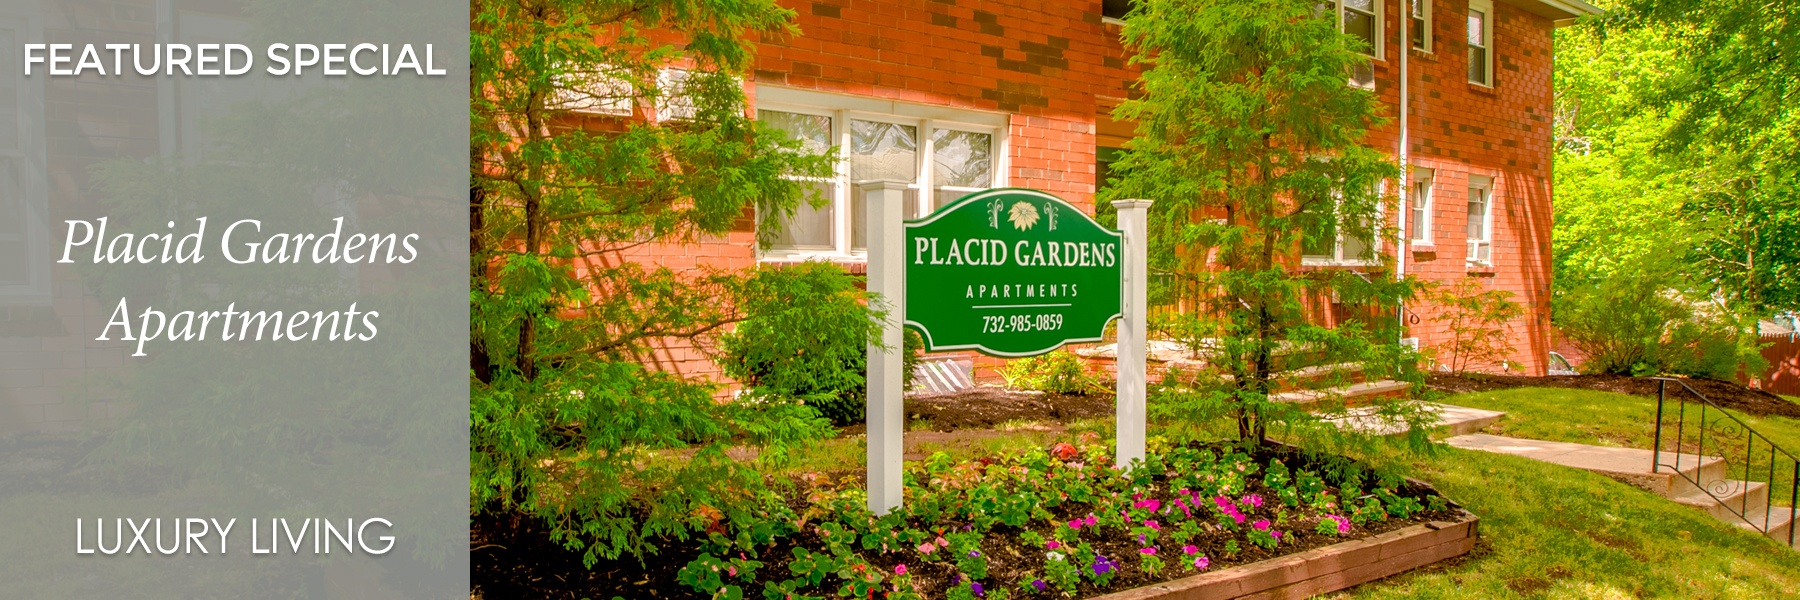 Placid Gardens Apartments For Rent in Highland Park, NJ Specials